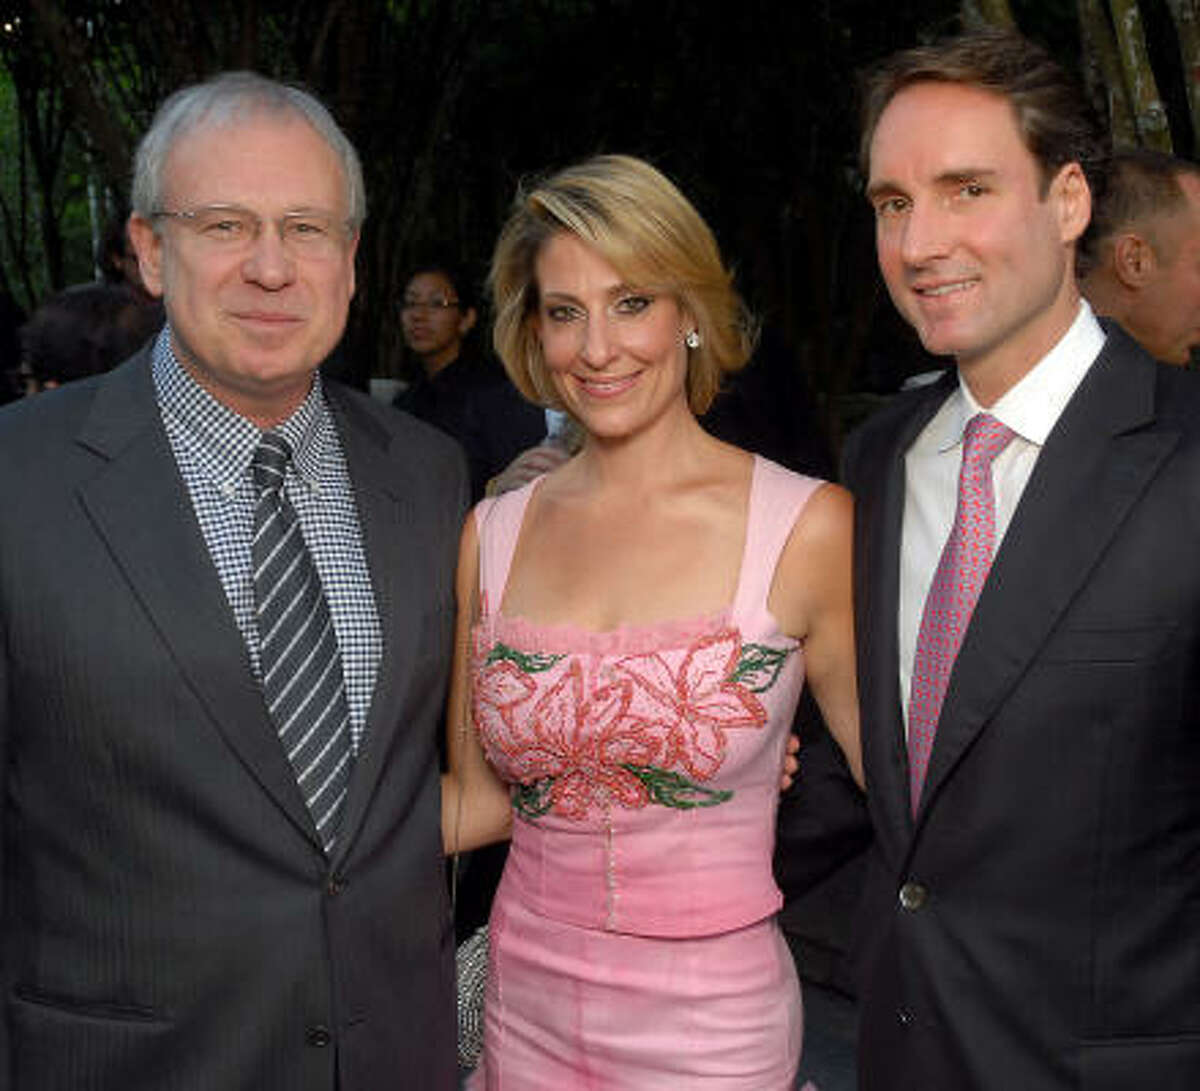 From left: John Thrash with Jessica and Philipp Meyer